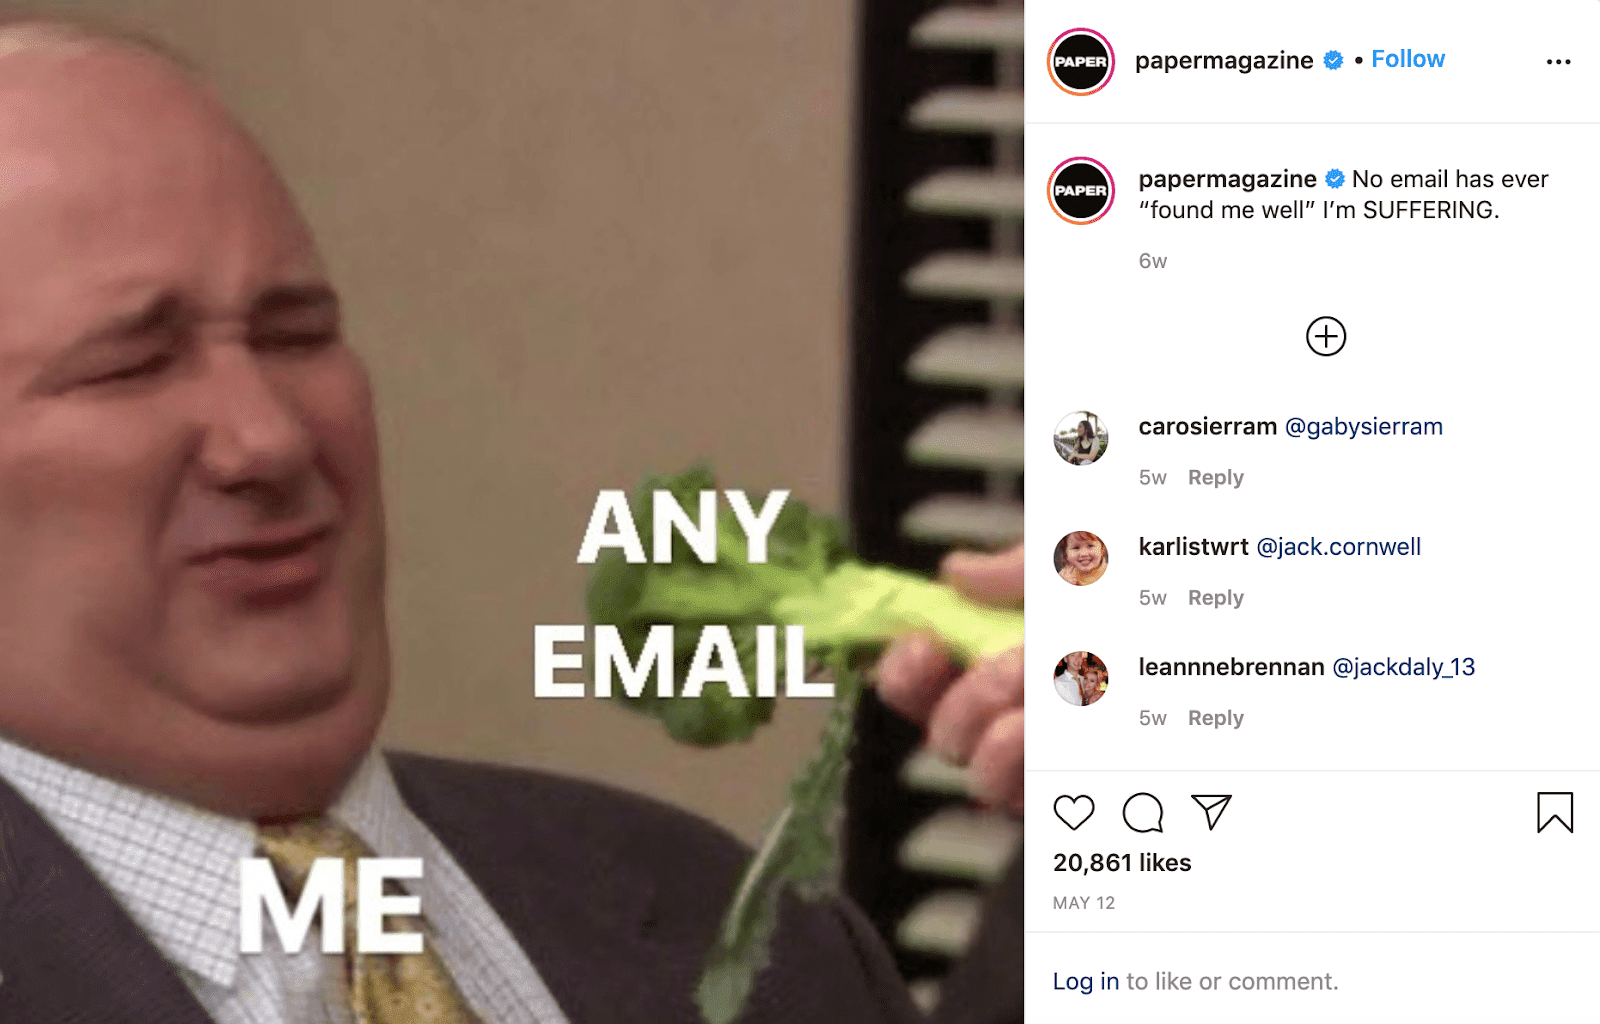 """Photo of character Kevin from """"The Office"""" making a resistant face as a hand with broccoli comes toward him. Kevin has text, """"ME,"""" on him, and broccoli has text, """"ANY EMAIL,"""" on it."""